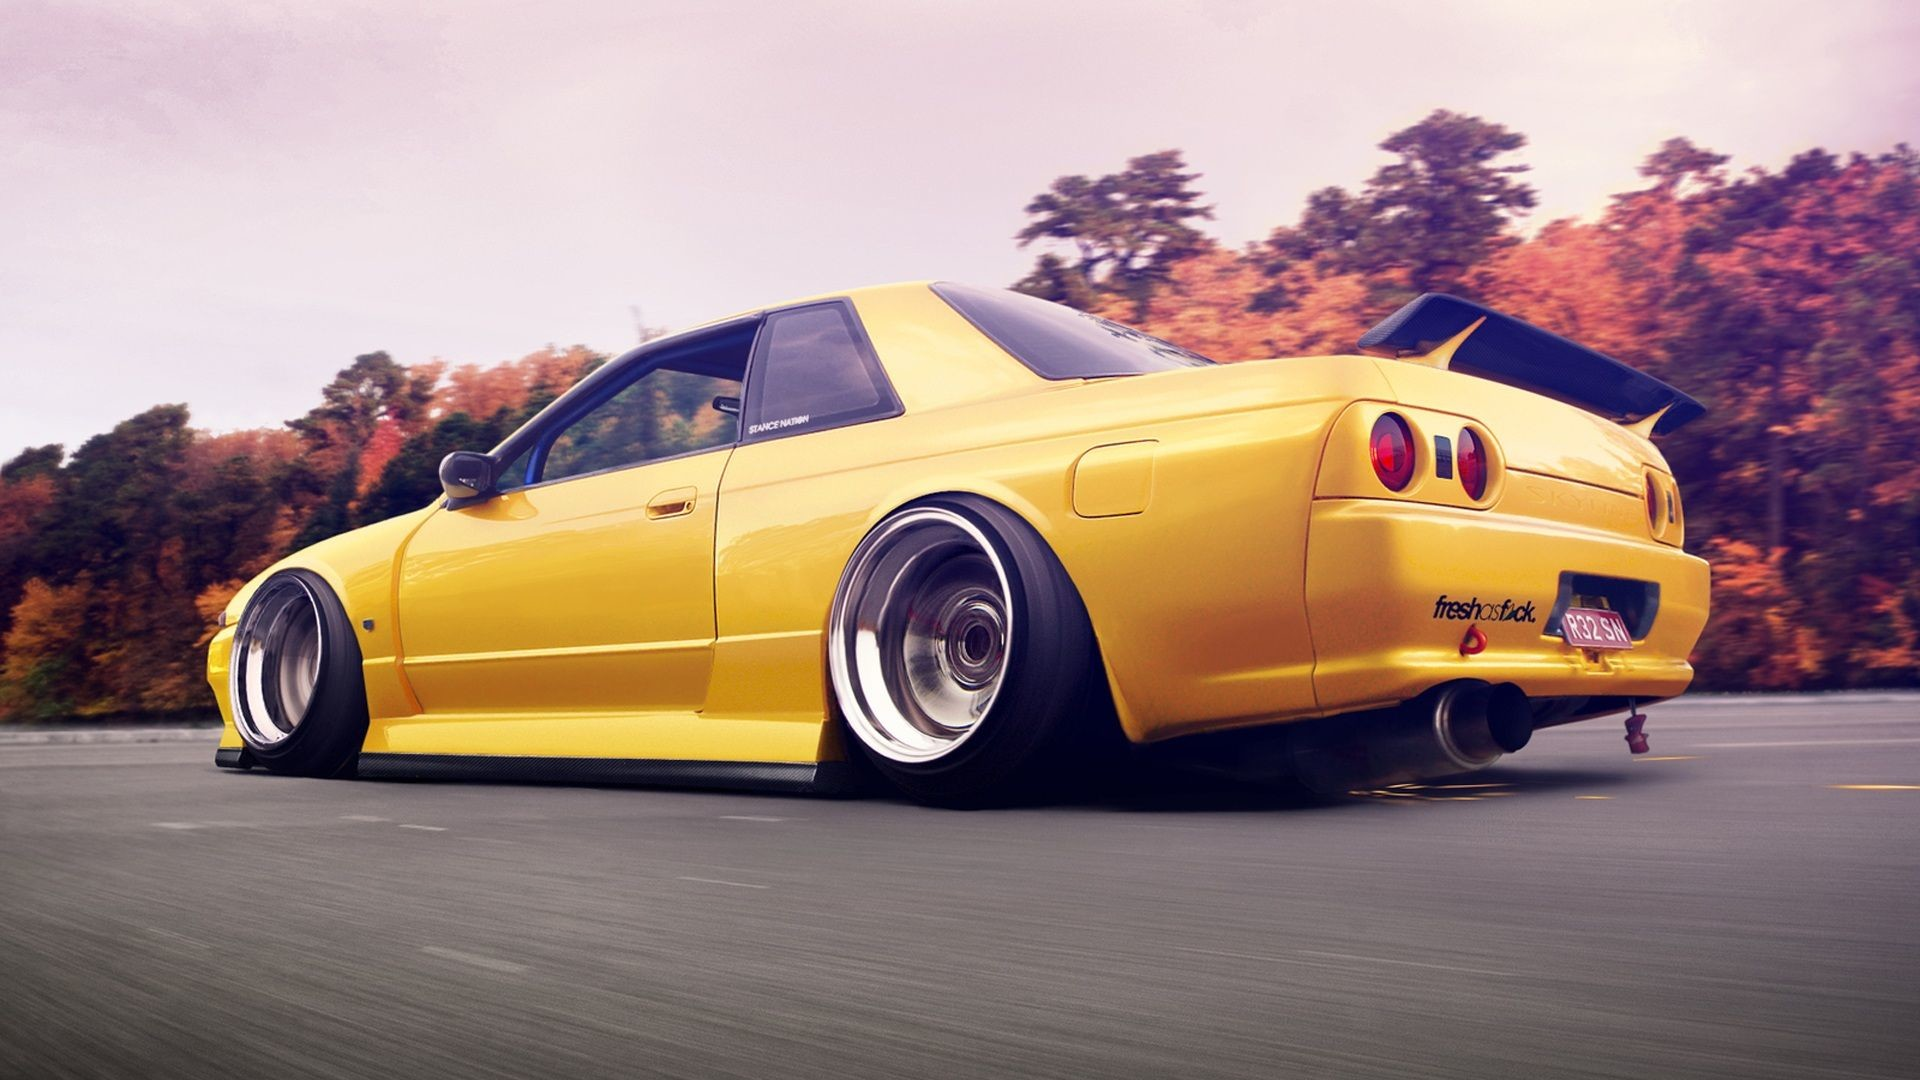 Nissan Skyline Wallpaper Collection For Free Download